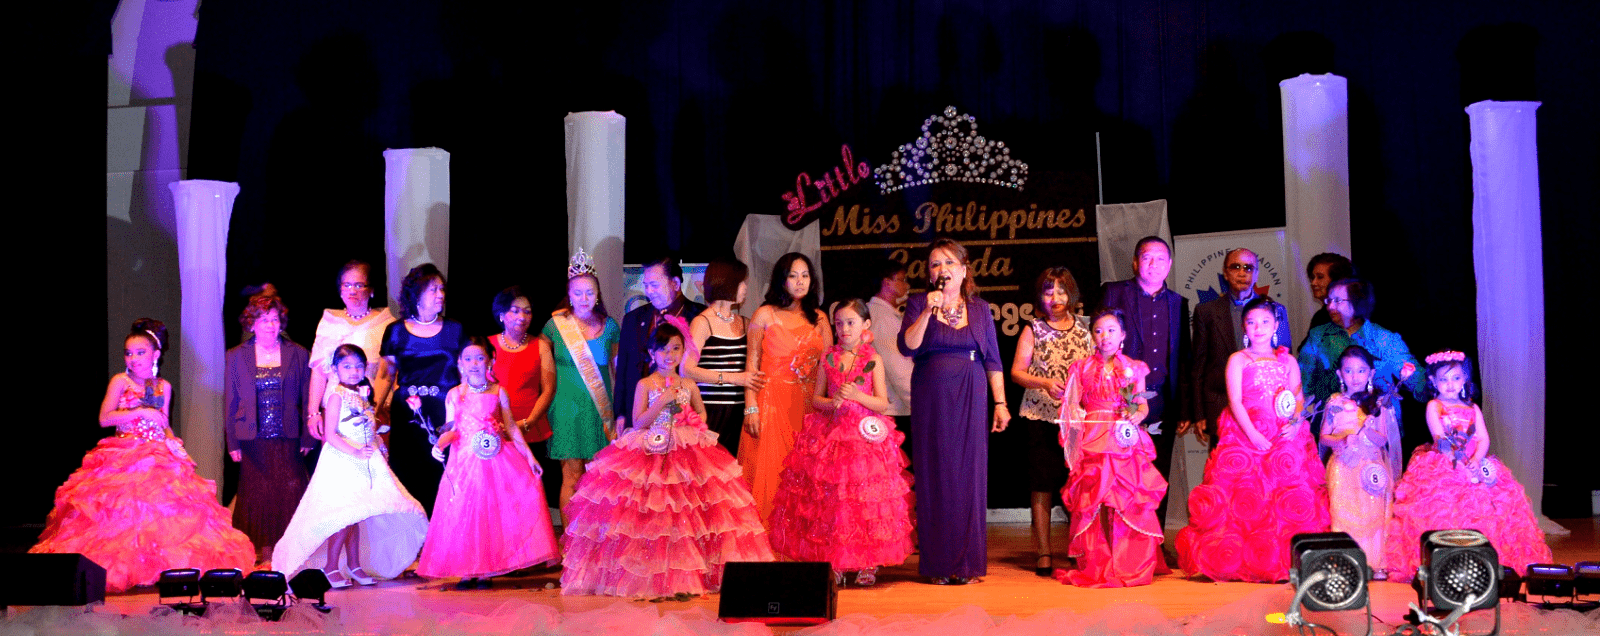 Miss Philippines Canada candidates joined by PCCF Officers and Senator Jun Enverga.